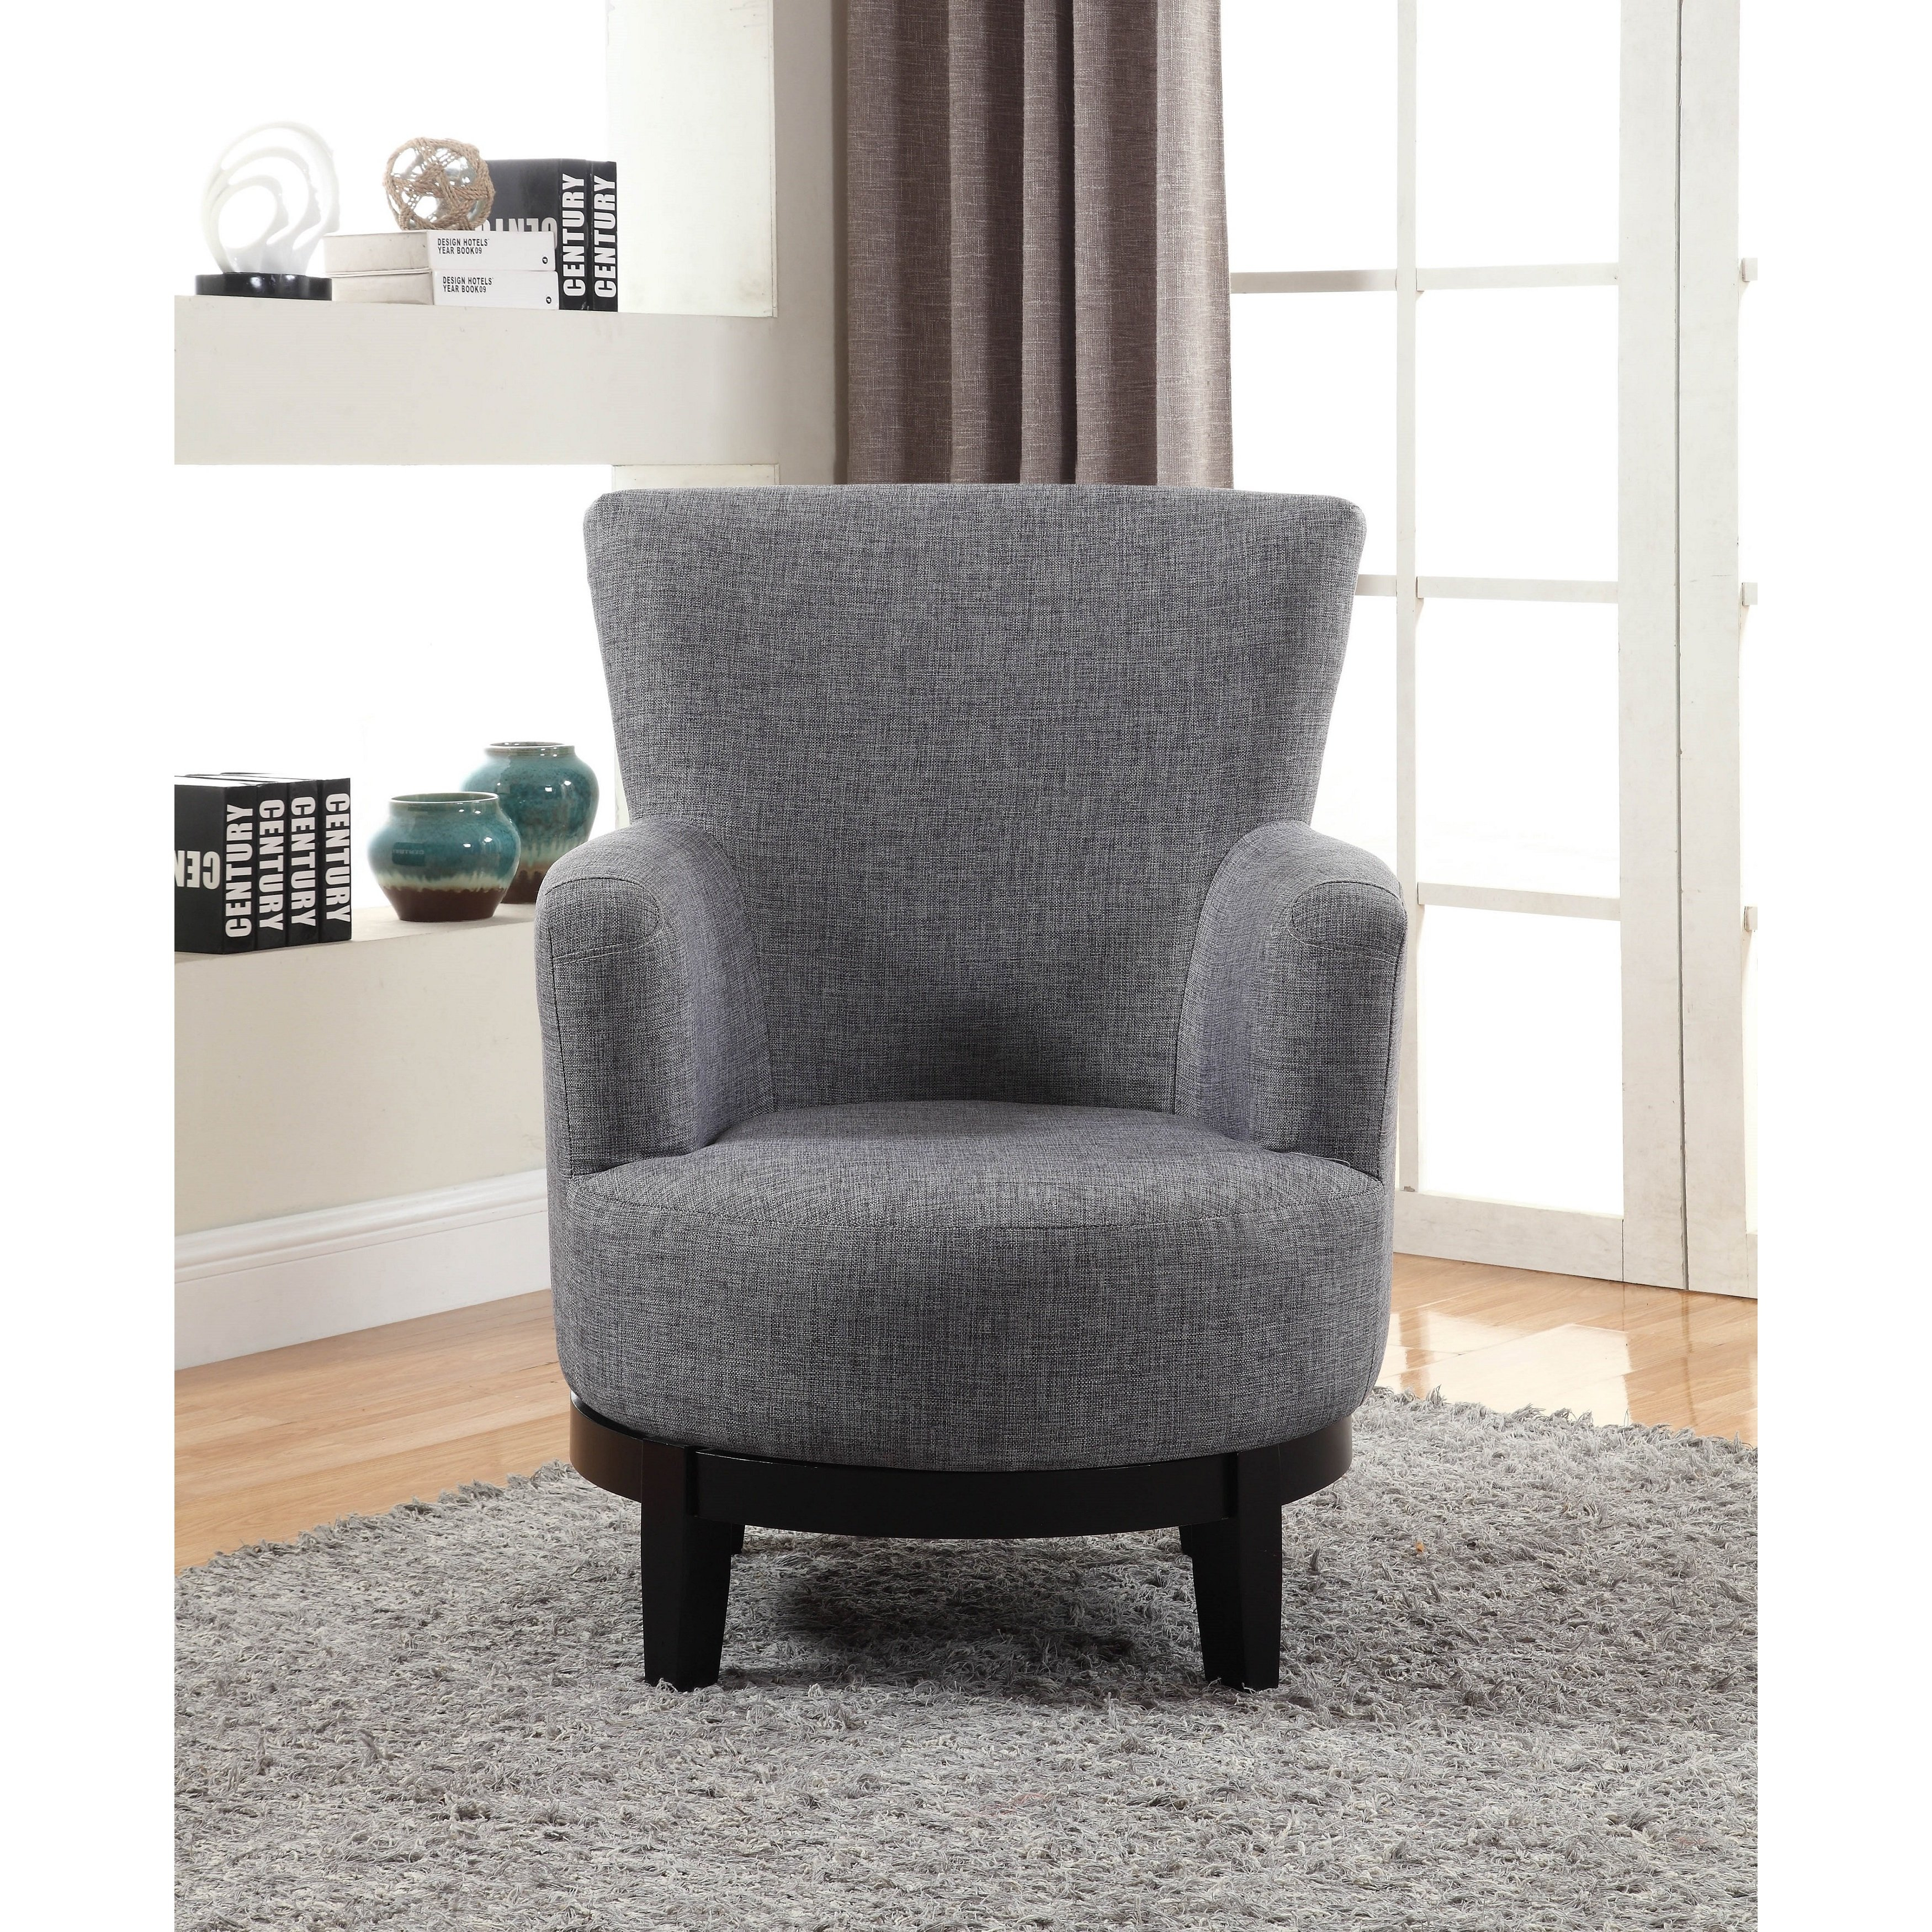 Shop Nathaniel Home Dominic Grey Swivel Accent Chair – Free Shipping Intended For Umber Grey Swivel Accent Chairs (View 6 of 25)